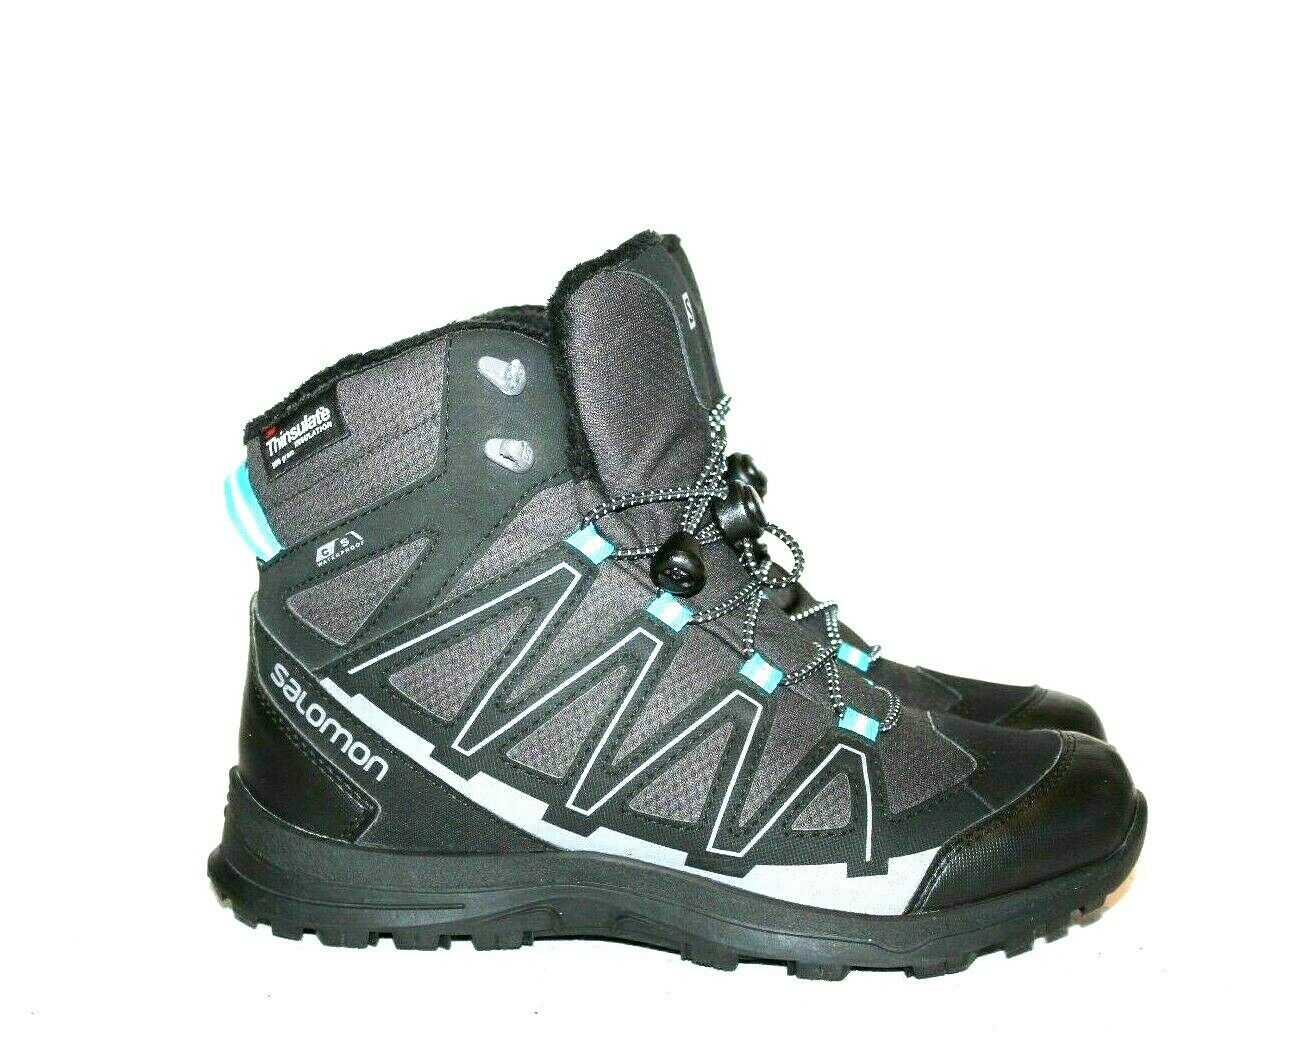 Salomon 3M THINSULATE WATERPROOF!CONTAGRIP Damen Schuhe Trek